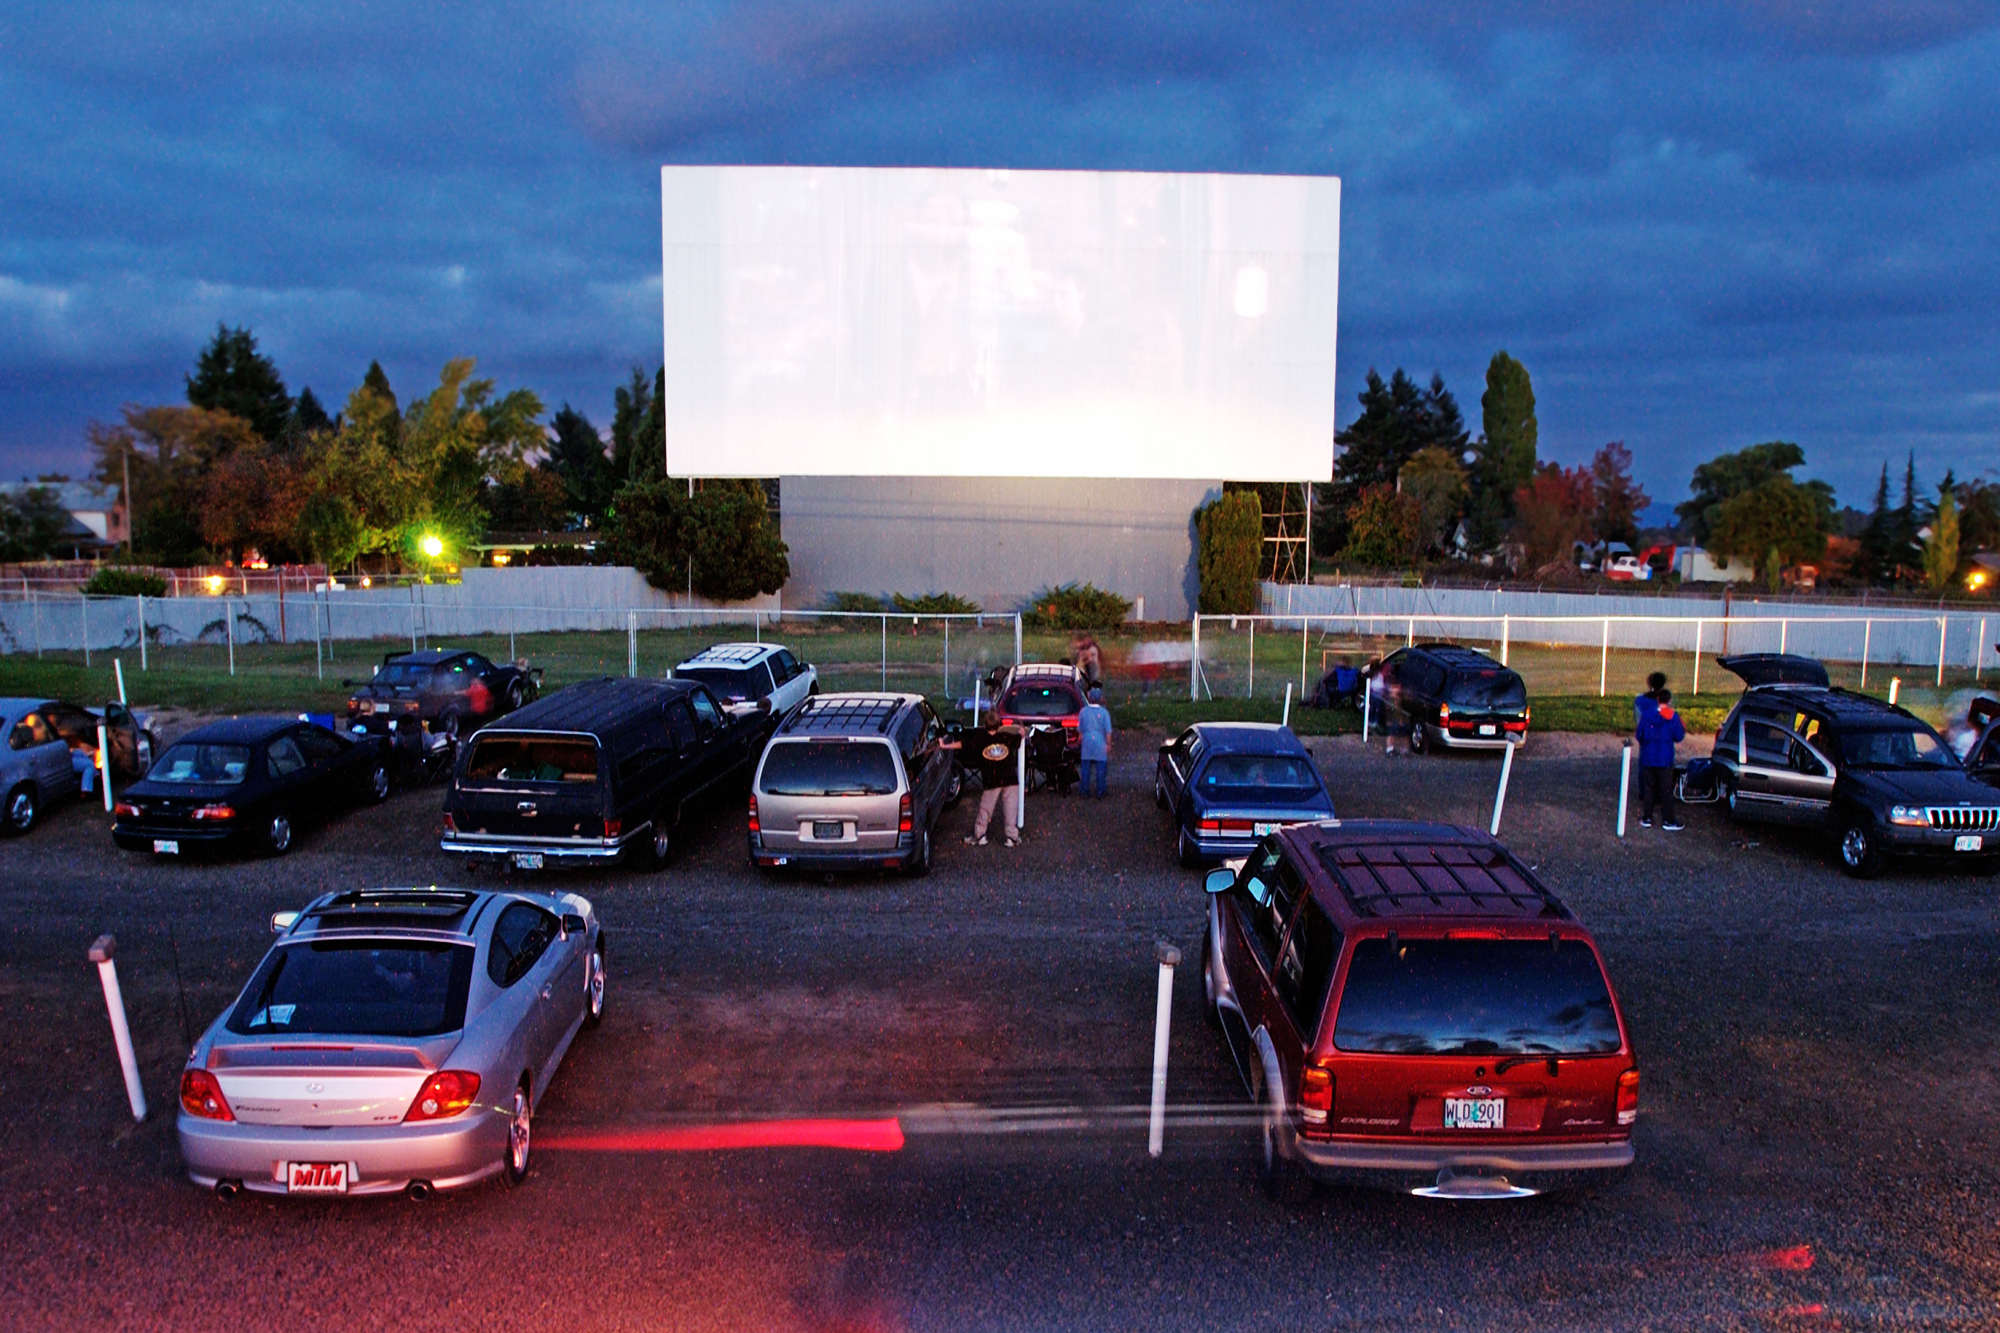 Restaurants Are Turning Their Parking Lots into Drive-In Movie Theaters hed